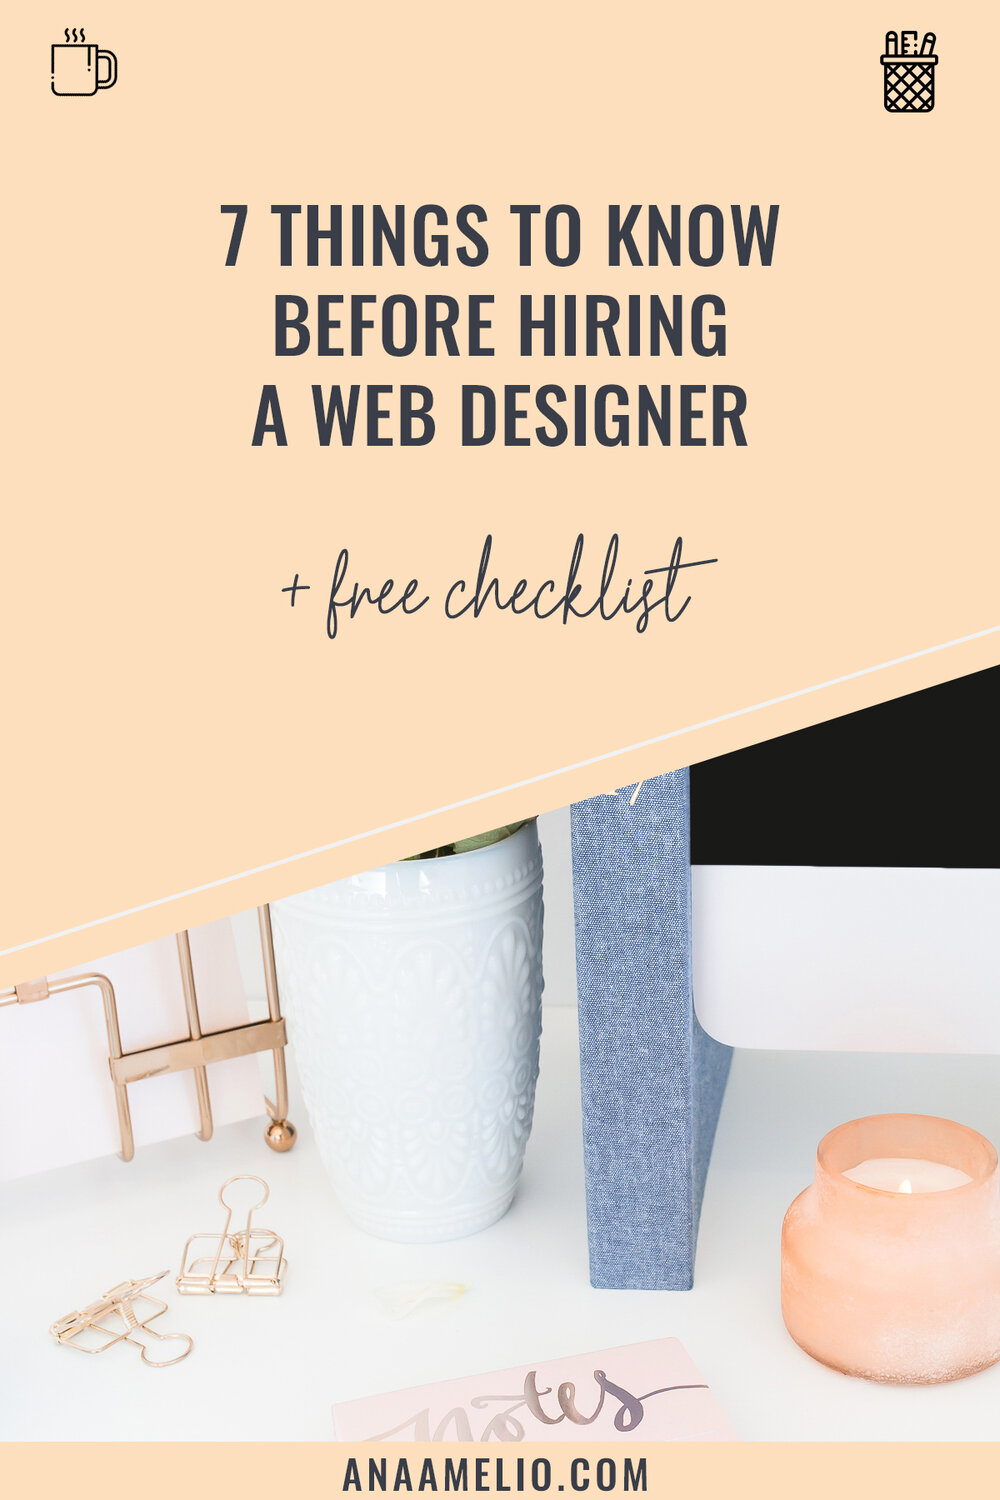 So you've decided to hire a web designer to design your website. Excellent news girl! But, before you set out to hire a web designer, there are a few things you need to know if you want your project to go smooth as butter. #brandedbossbabe #hireawebdesigner #websitedesign #squarespace